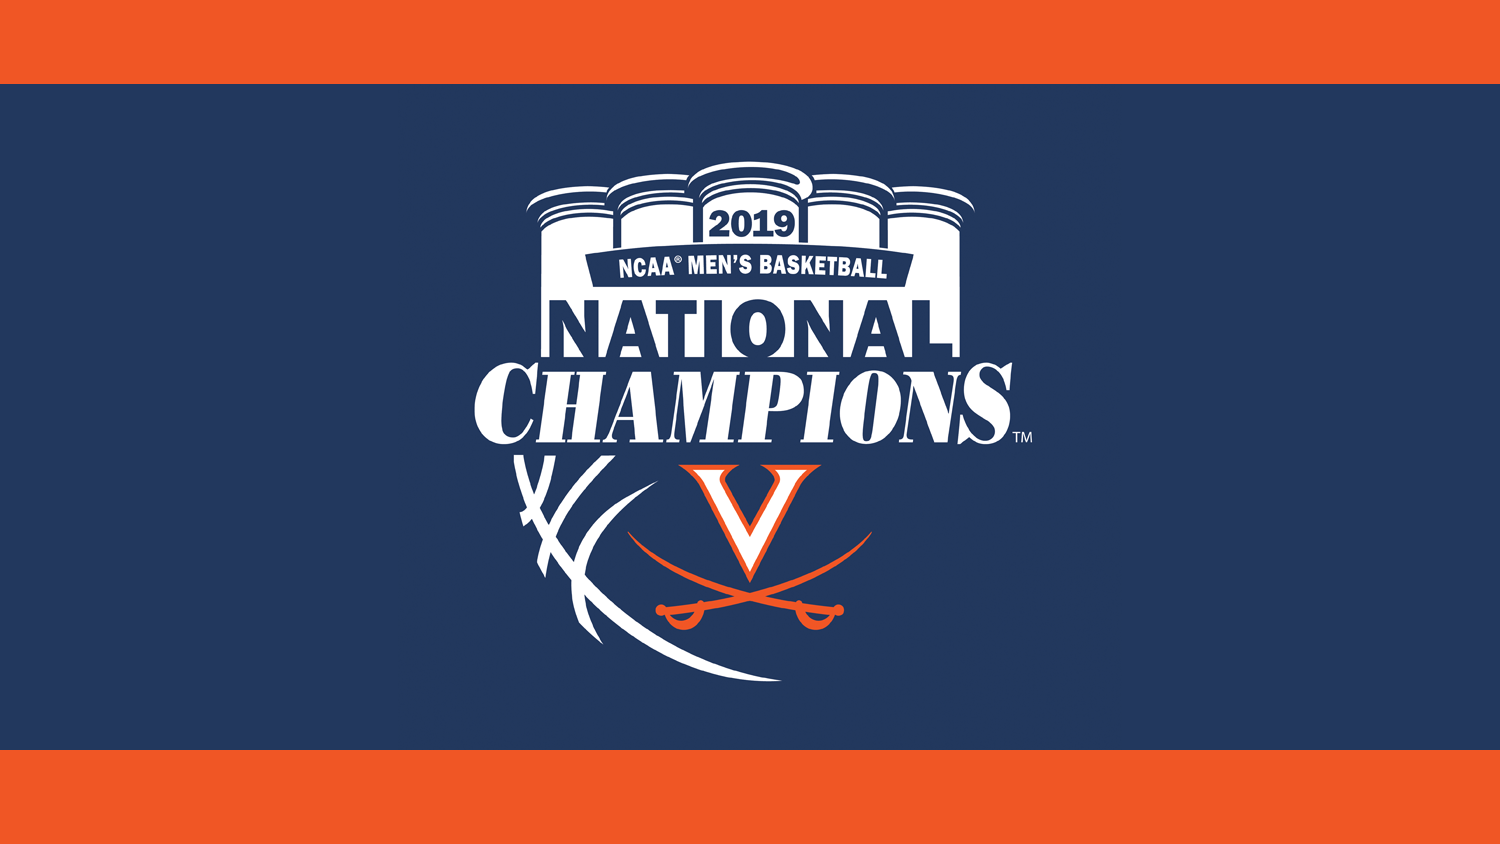 The University of Virginia Artifact Collection - We are thrilled to partner with the University of Virginia to create collectibles from some of the most significant elements of UVA athletic history:1. 2019 Men's Basketball National Championship Court Collectibles2. Historic University Hall Collectibles3. (Coming Soon) 2019 Men's Lacrosse National Championship CollectiblesAll Artsman collectibles are hand-crafted from authentic, game-used or historic elements. Our craftsmen are actively creating UVA items now. Please allow 4–8 weeks for delivery of items after online orders.We are experiencing unexpected delays on some of our jewelry and novelties produced in China.